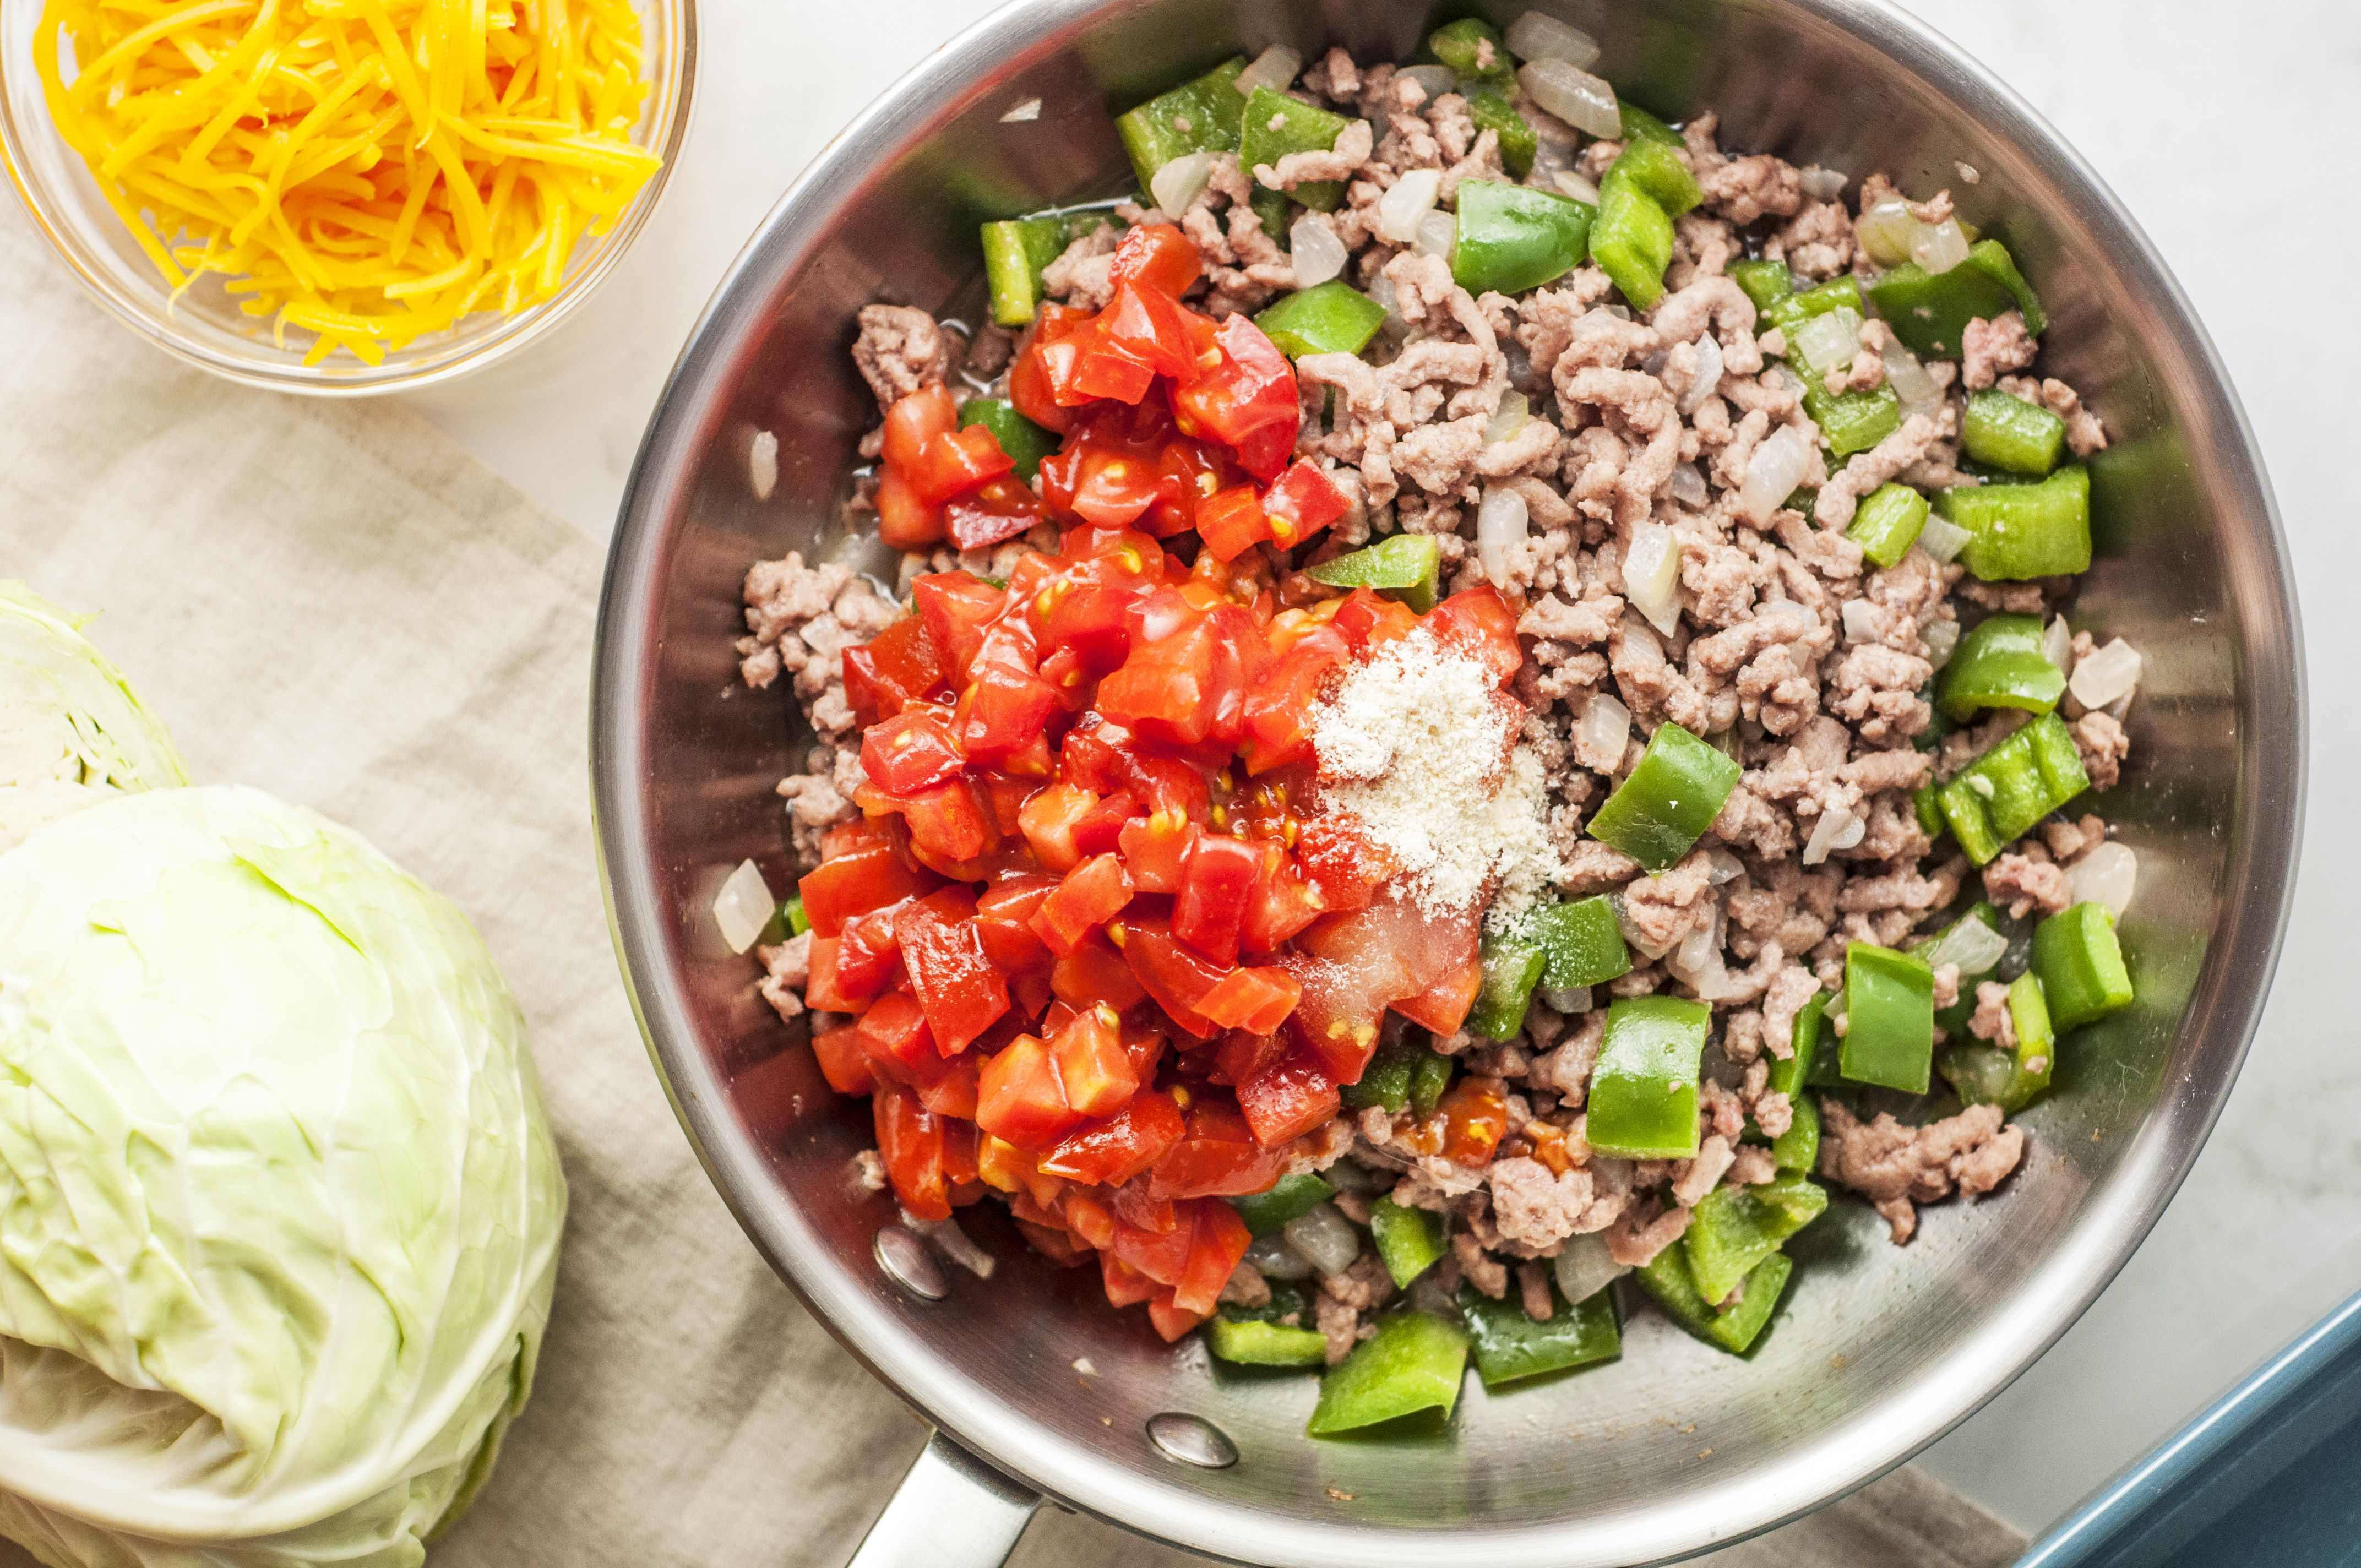 Mixed beef and vegetables for casserole